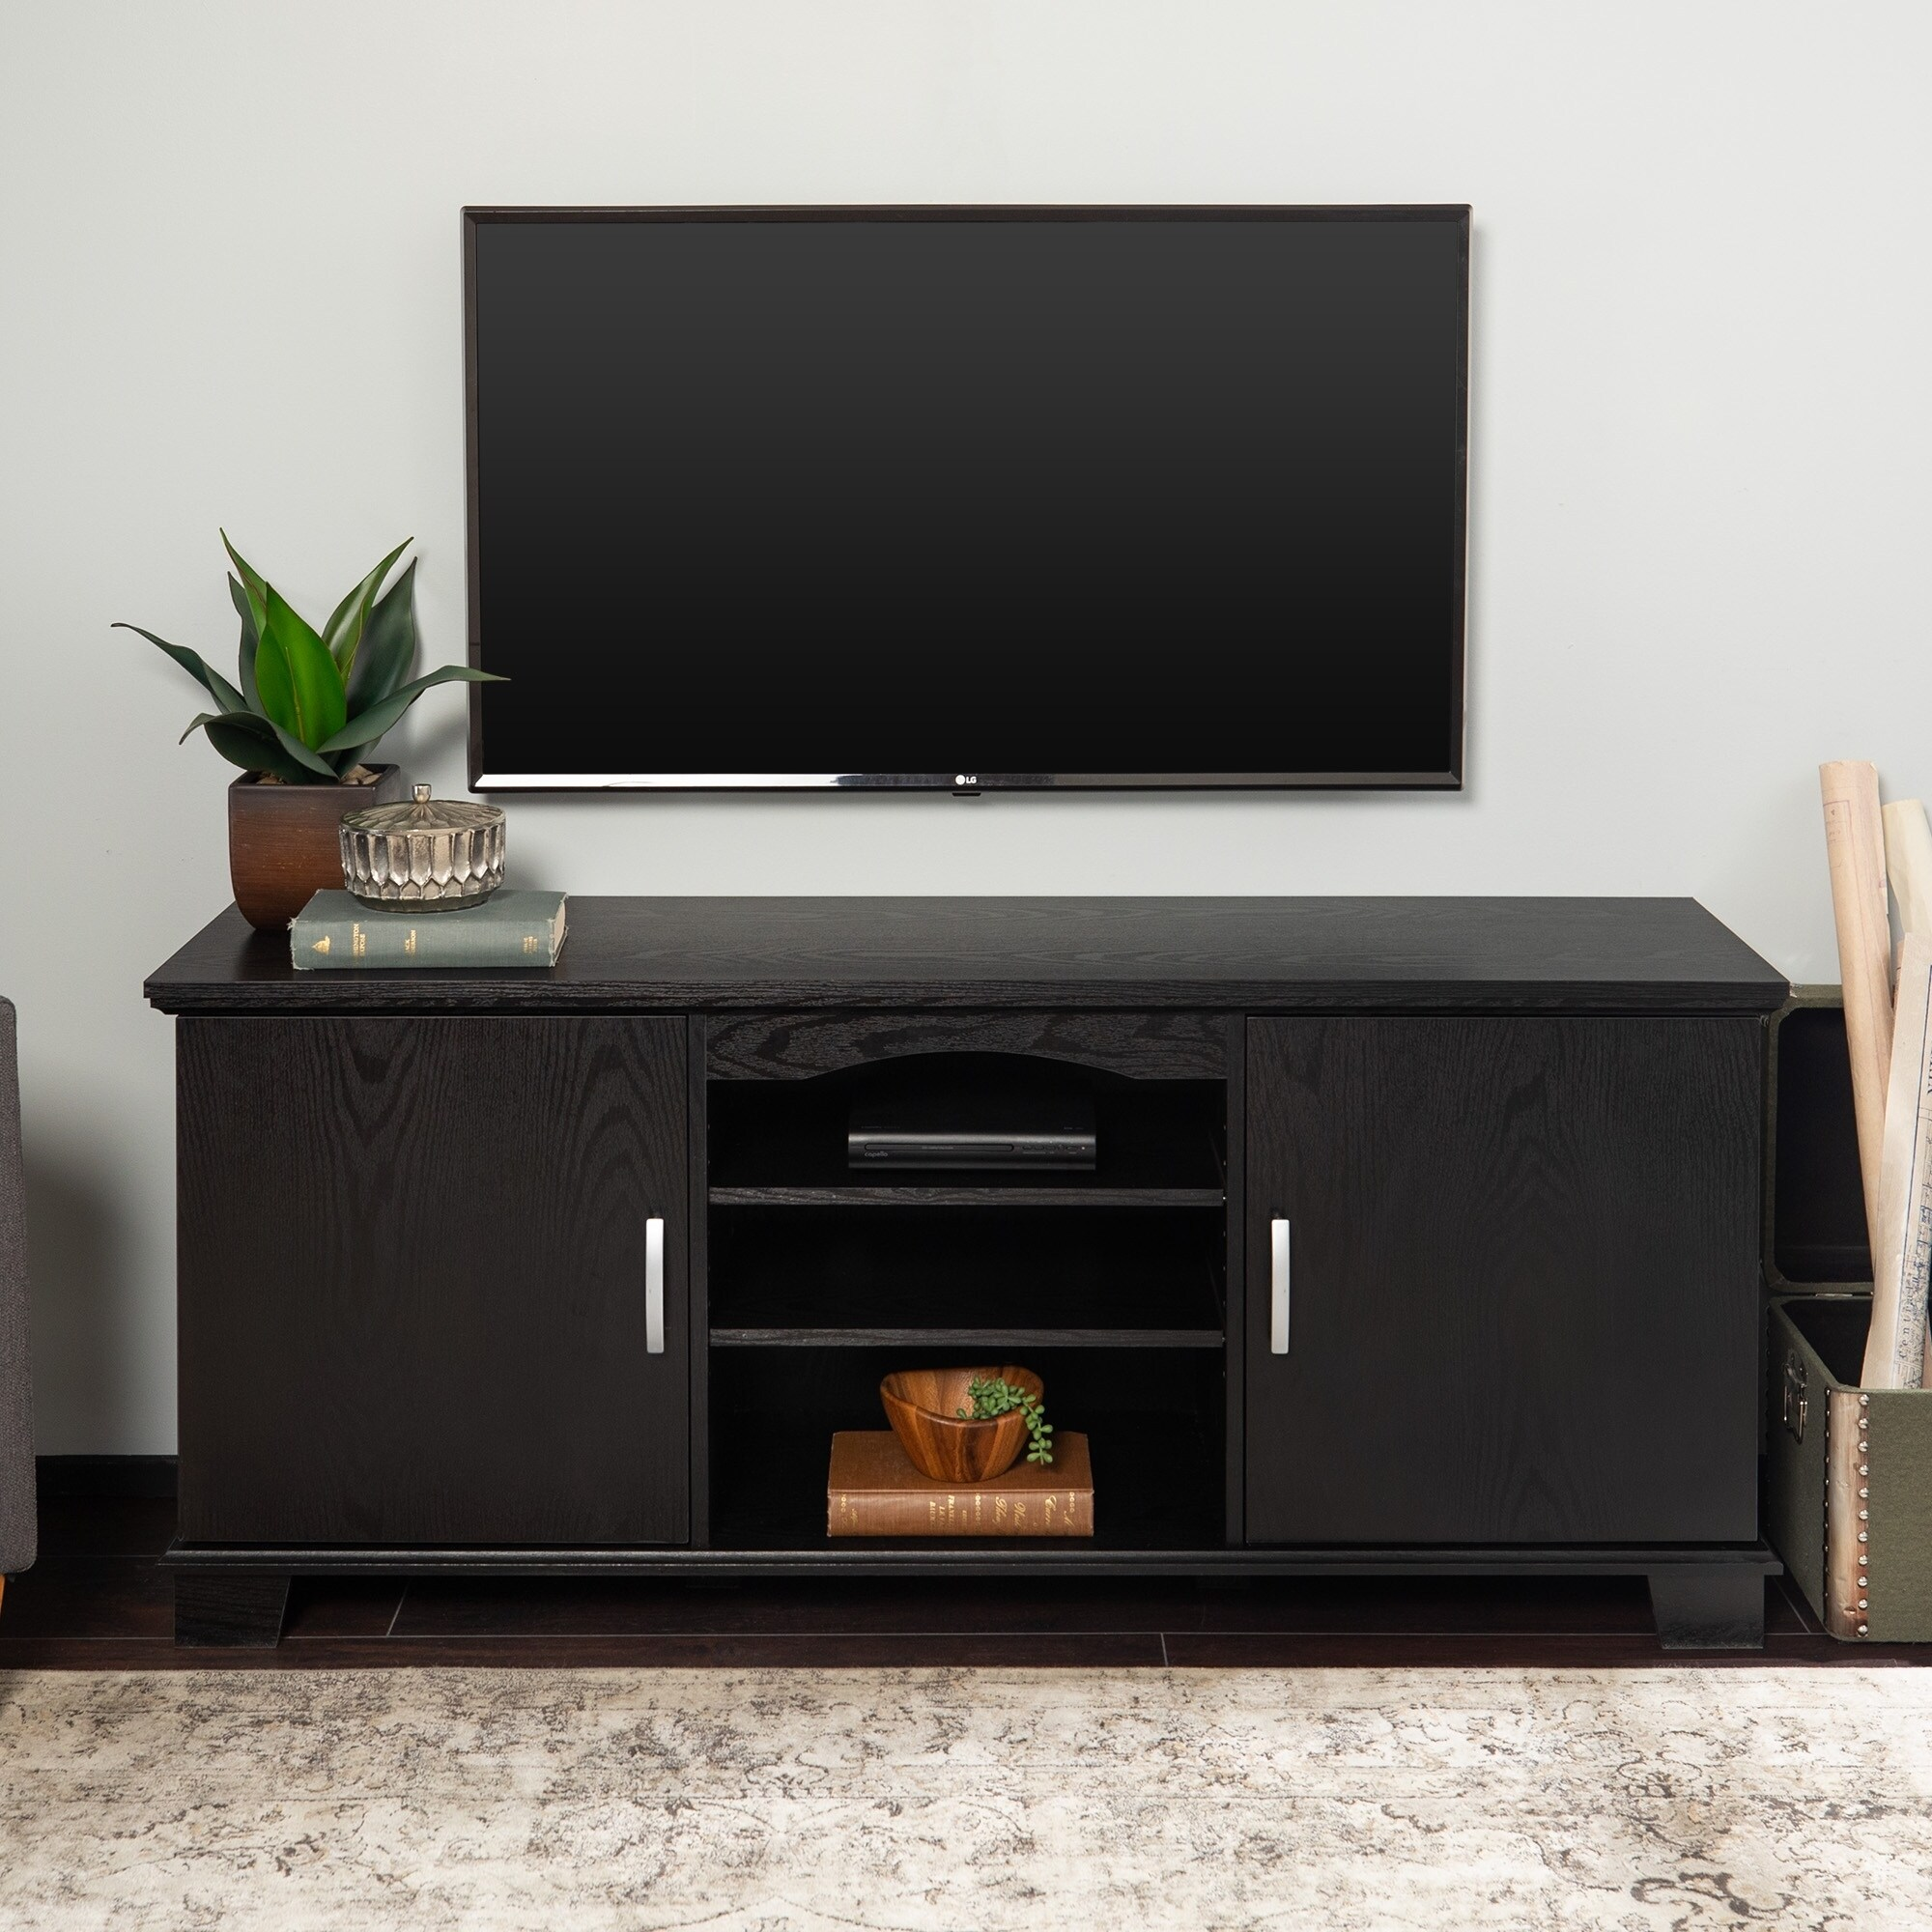 Middlebrook Designs 57 Inch Tv Stand Console Black Entertainment Center 2 Door Media Storage X 16 24h